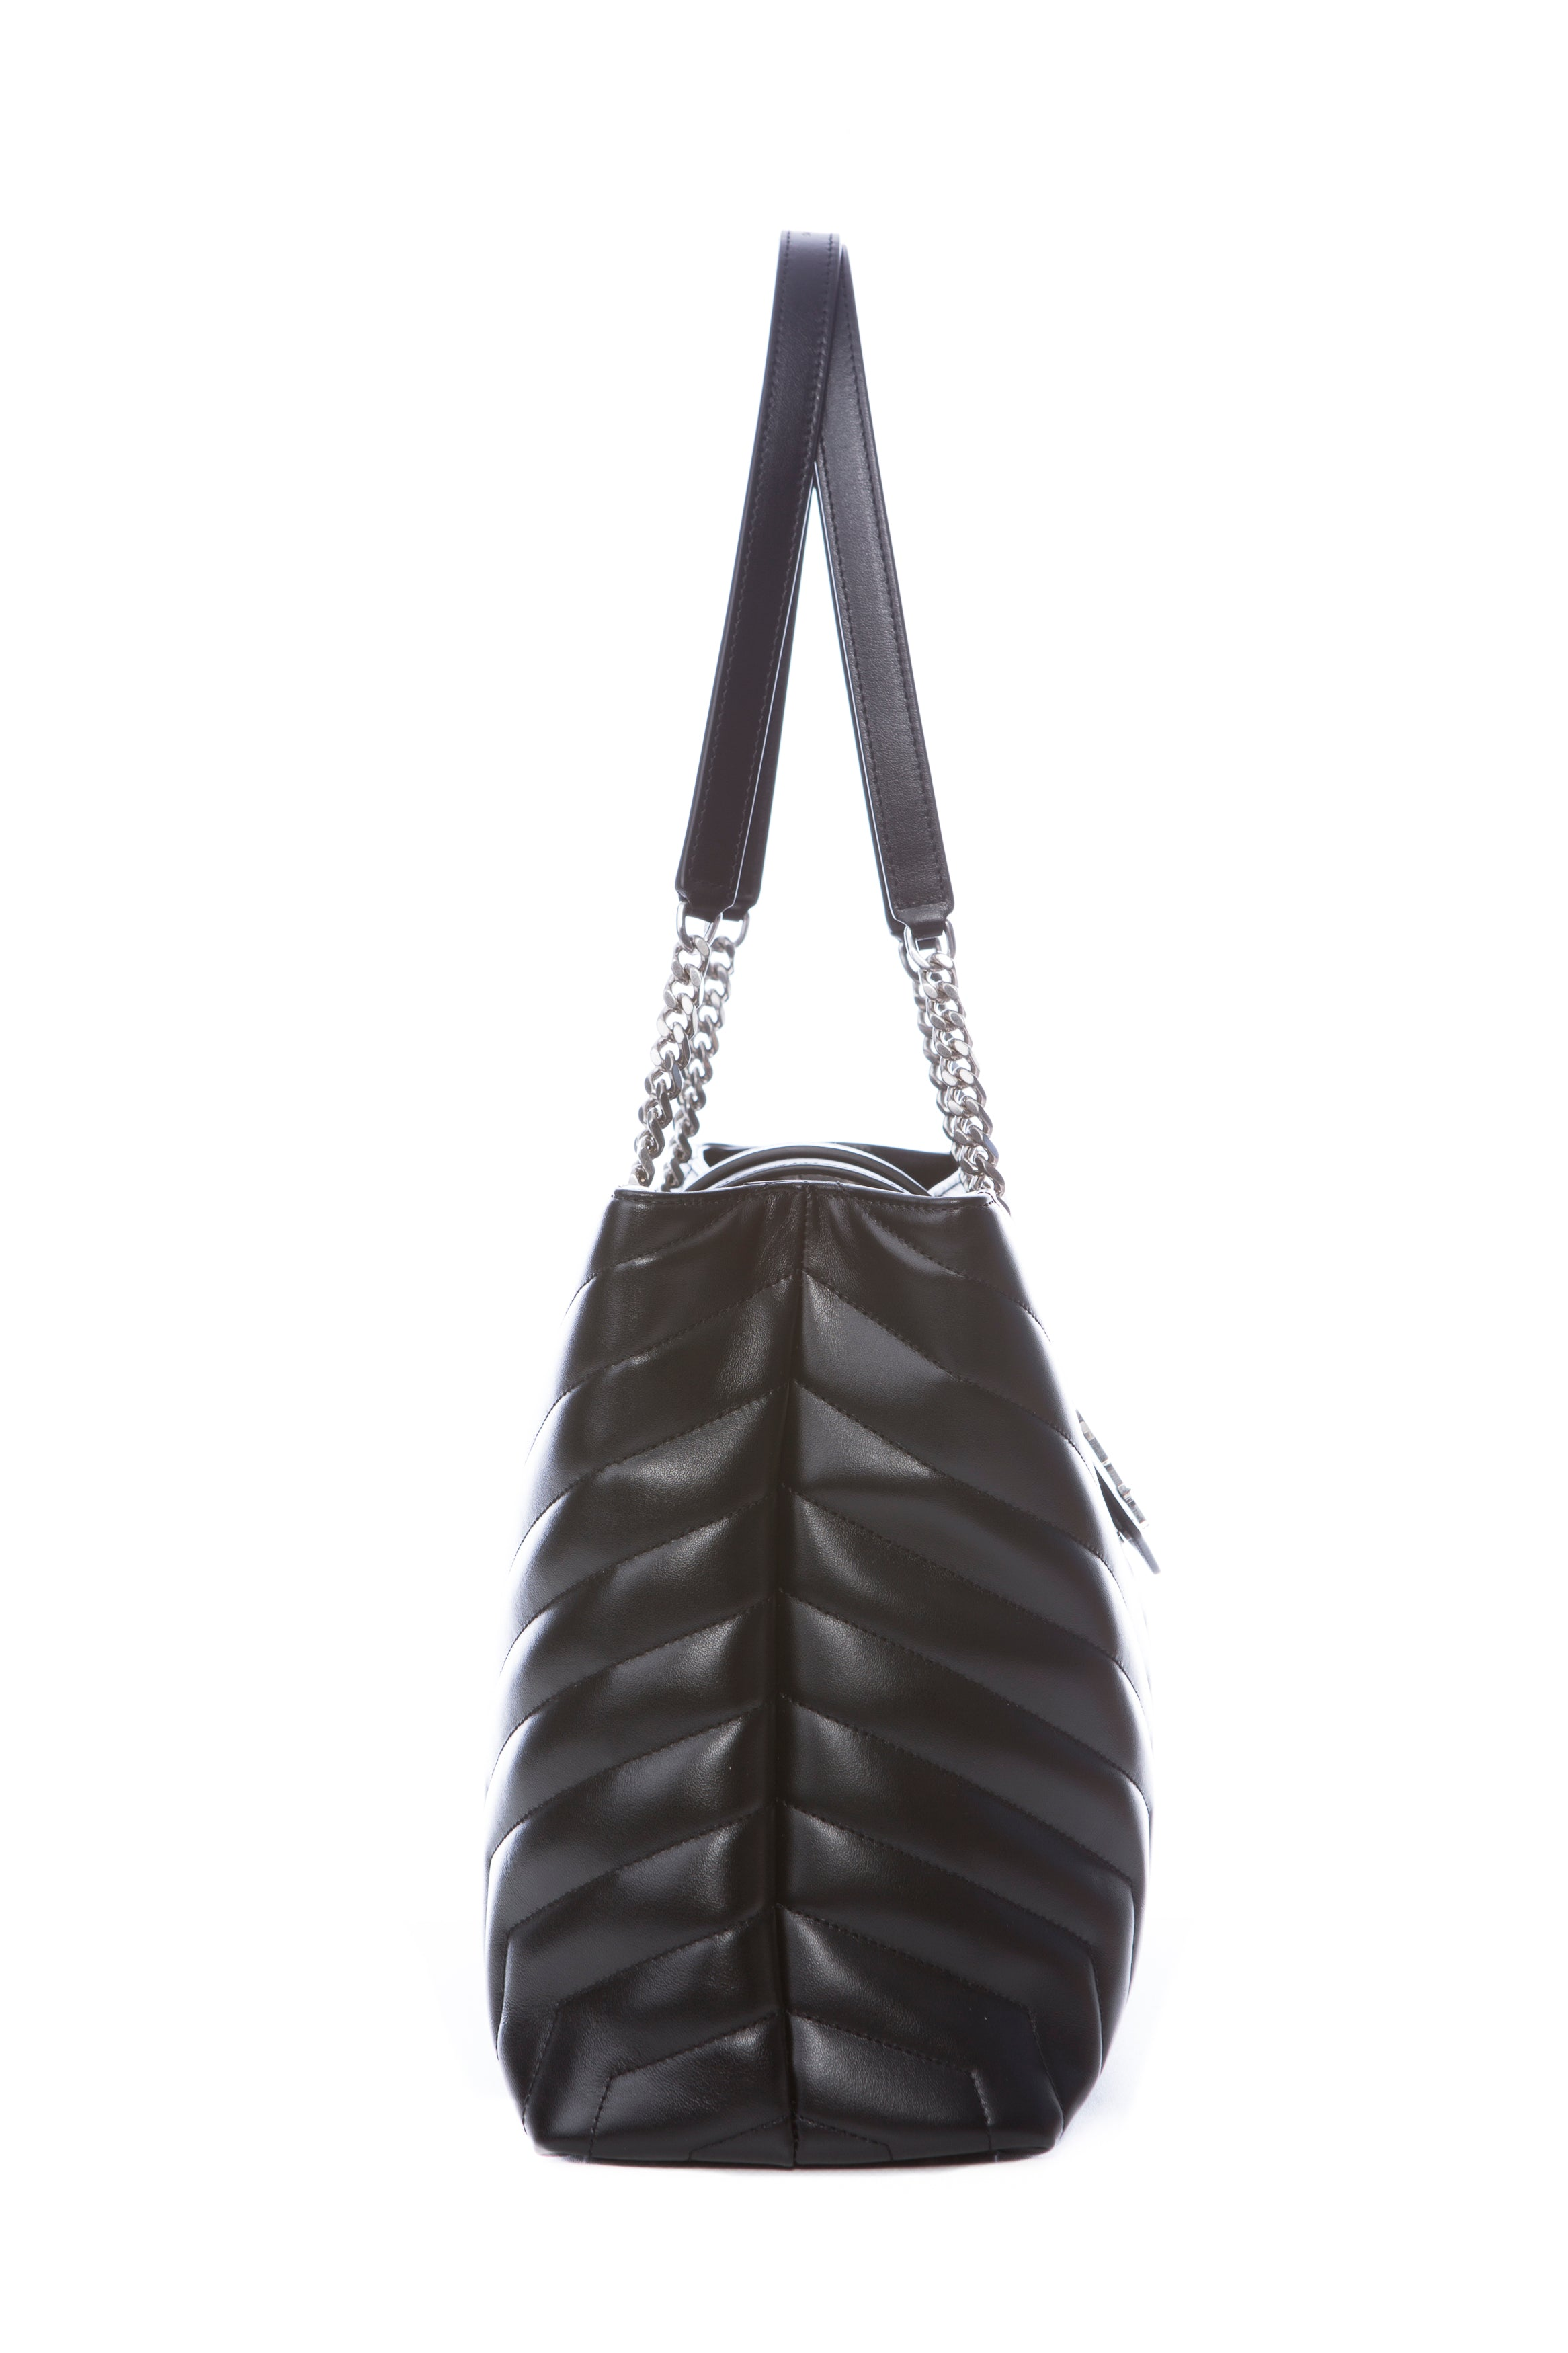 LARGE LOULOU SHOPPING BAG IN BLACK Y QUILTED LEATHER